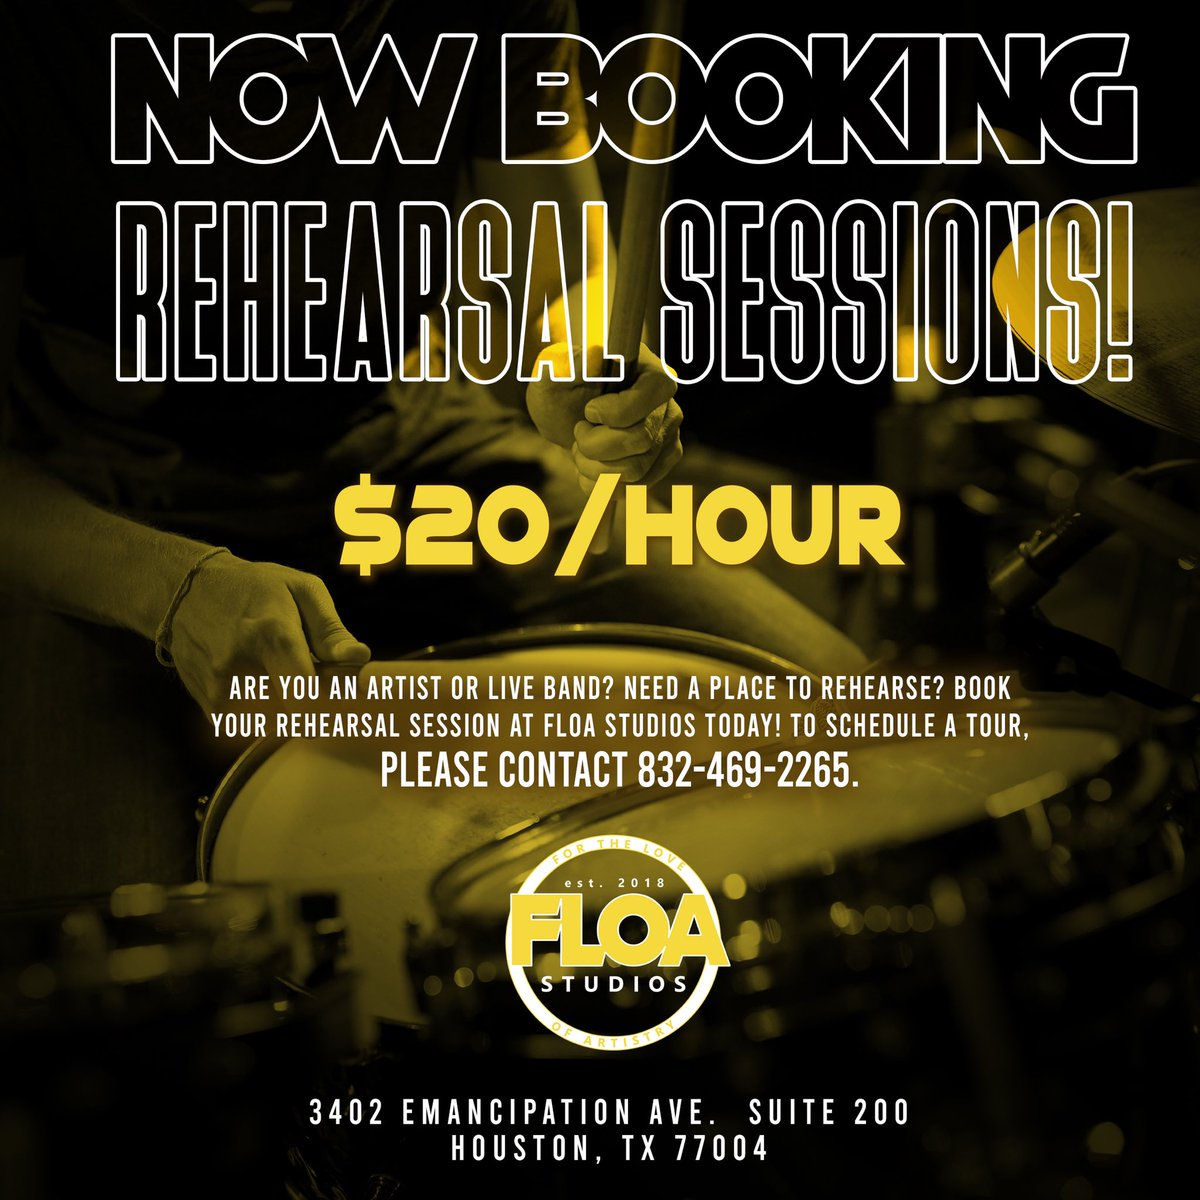 Looking to record or perform a new single, but need to spend some time rehearsing it?   Are you a live band & need some time to rehearse a new song or shed?   Bring your music/instruments & book a rehearsal session with us today    $20/hr    Open daily  pic.twitter.com/NIlwH7wxBx